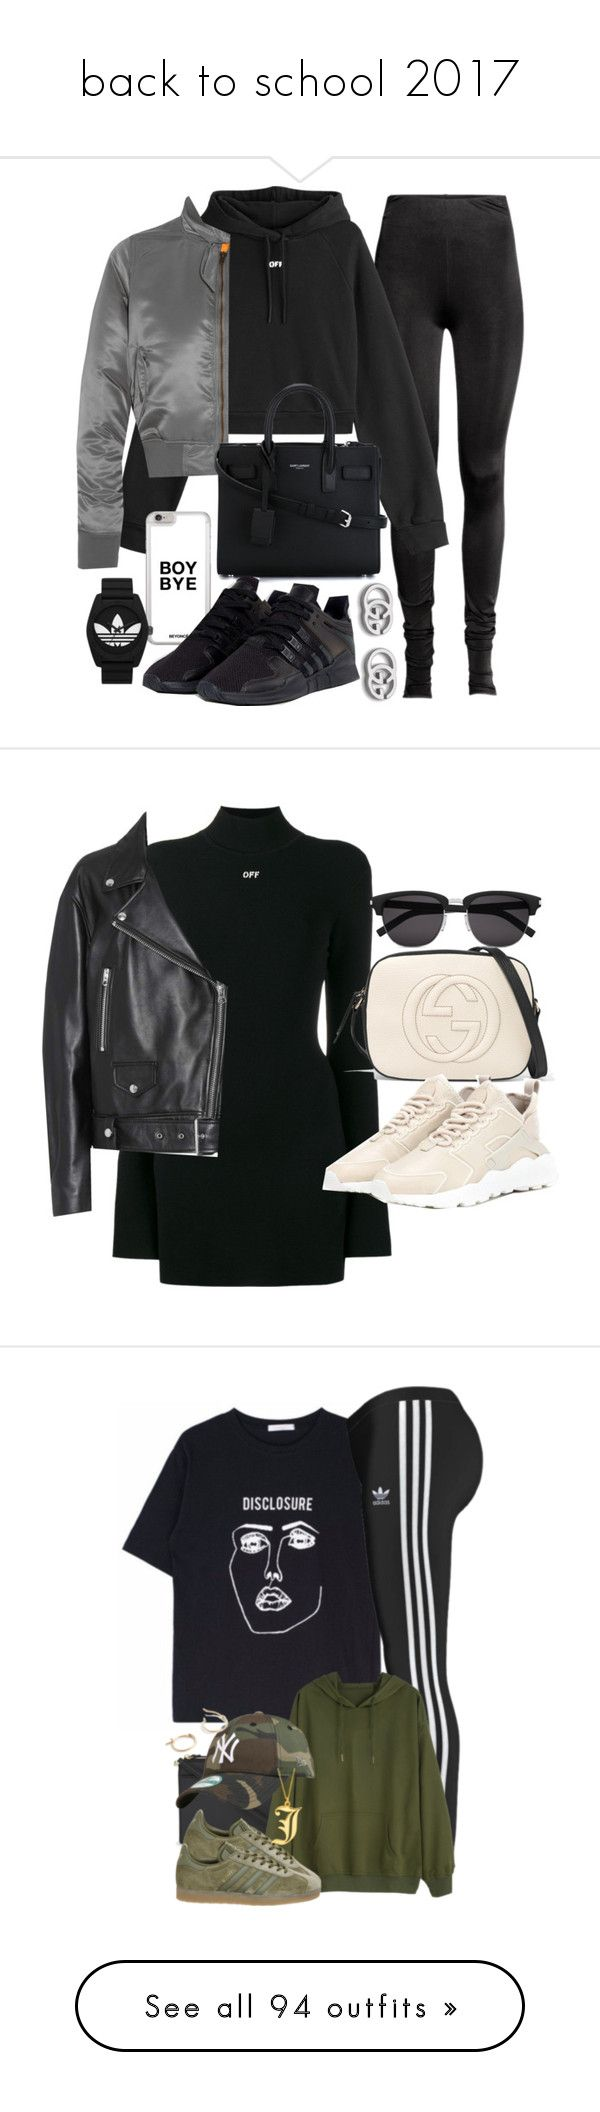 """""""back to school 2017"""" by dreaml-like-you-mean-it ❤ liked on Polyvore featuring Off-White, Balenciaga, Yves Saint Laurent, adidas, adidas Originals, Gucci, NIKE, Acne Studios, Kate Spade and Topshop"""